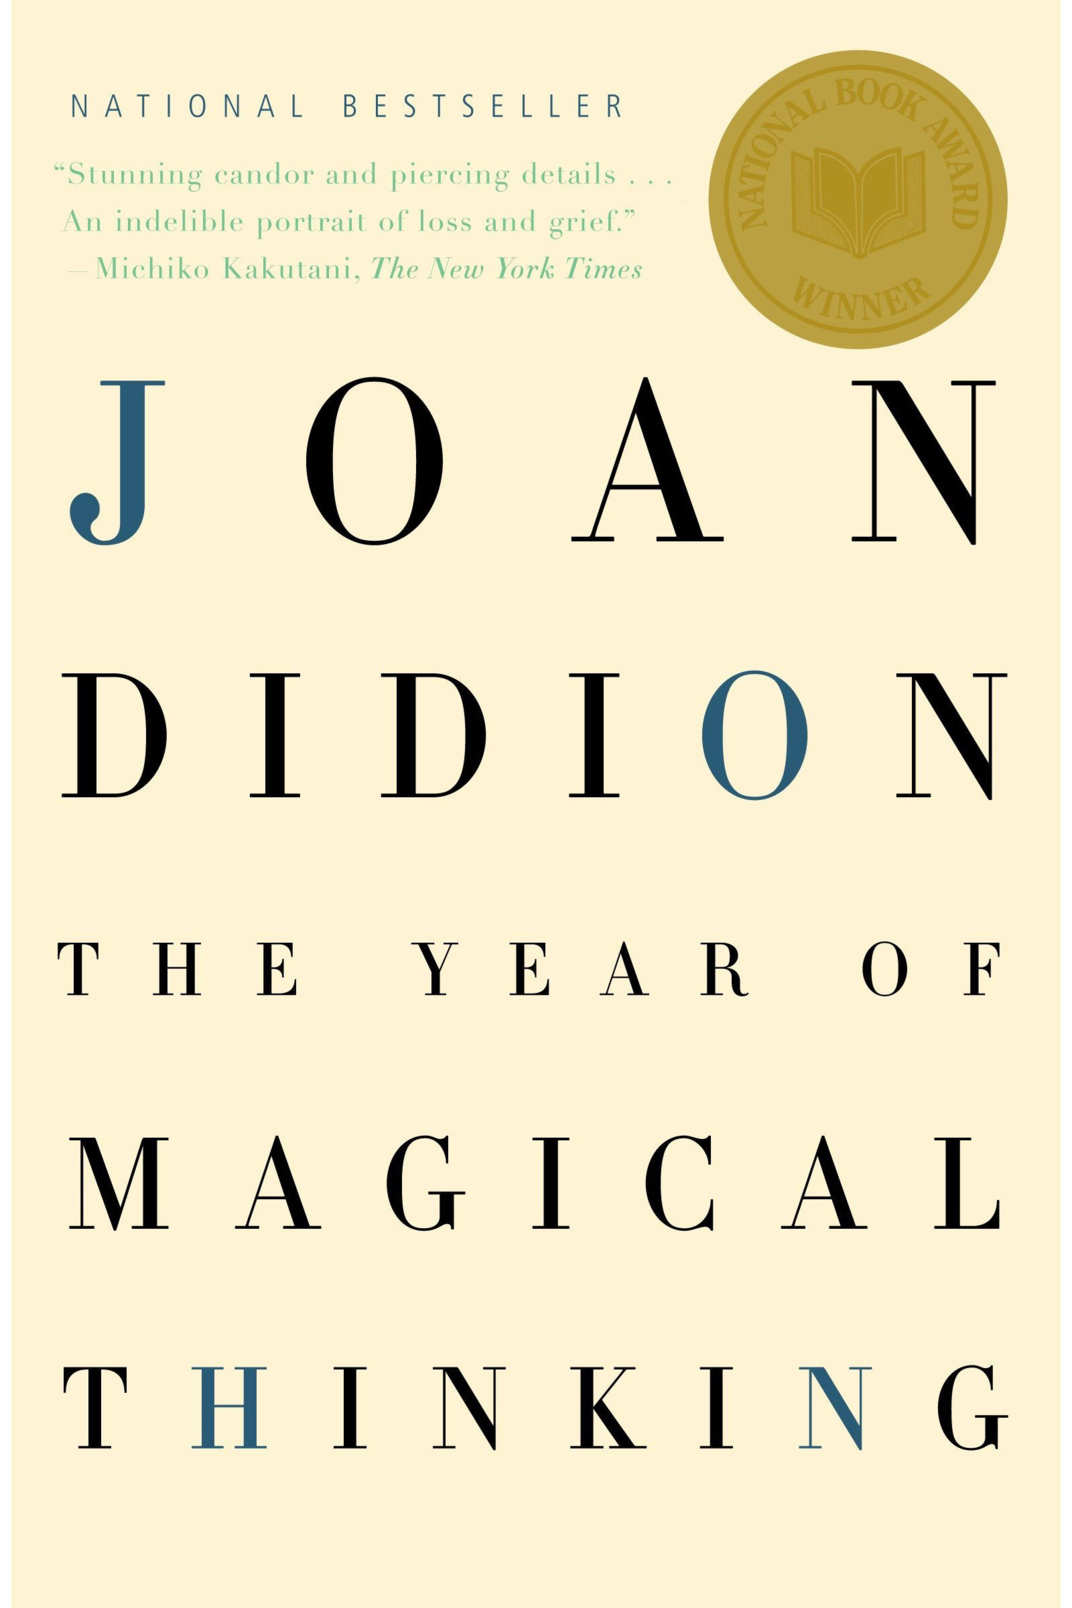 """The Year of Magical Thinking,"" by  Joan Didion"